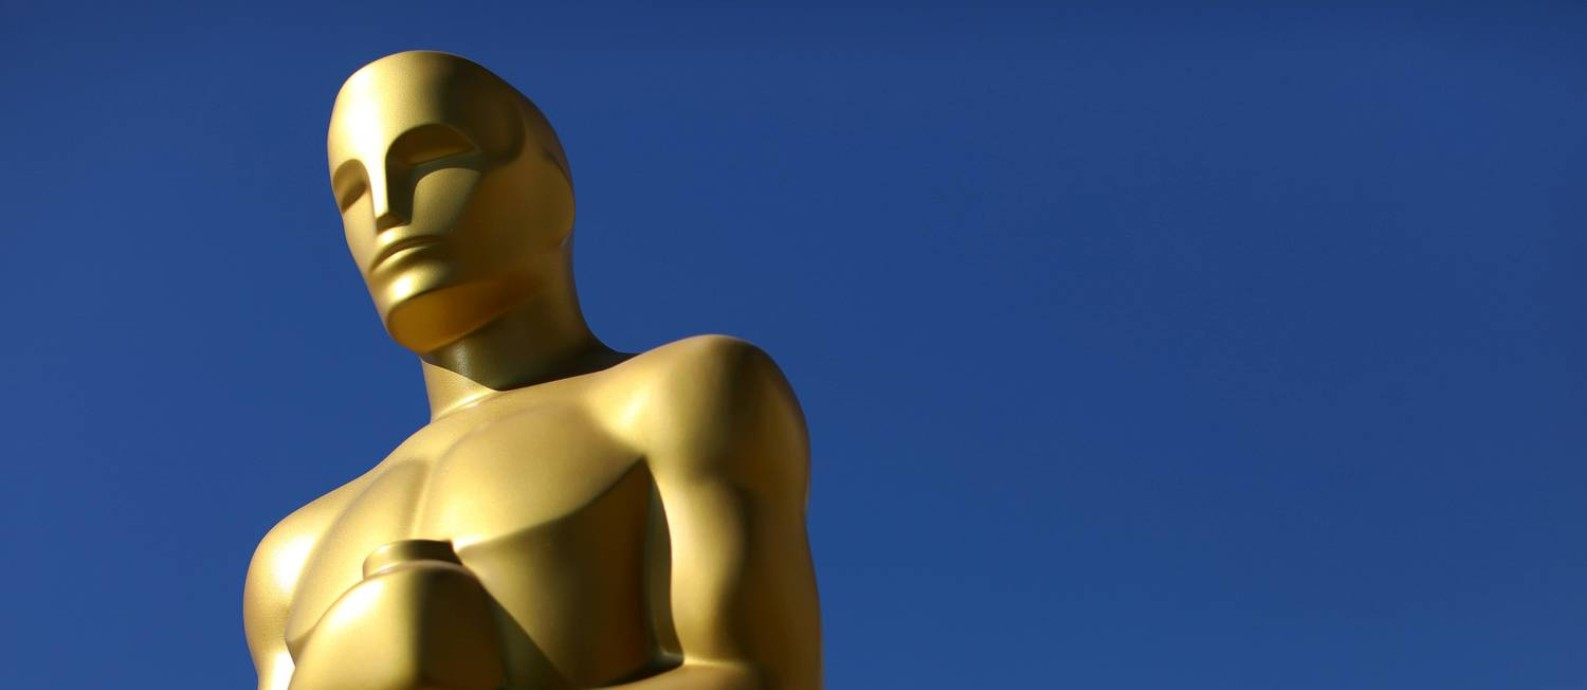 FILE PHOTO: Oscar statues dry in the sunlight after receiving a fresh coat of gold paint as preparations begin for the 89th Academy Awards in Hollywood, California, U.S., February 22, 2017. REUTERS/Mike Blake/File Photo Foto: Mike Blake / REUTERS